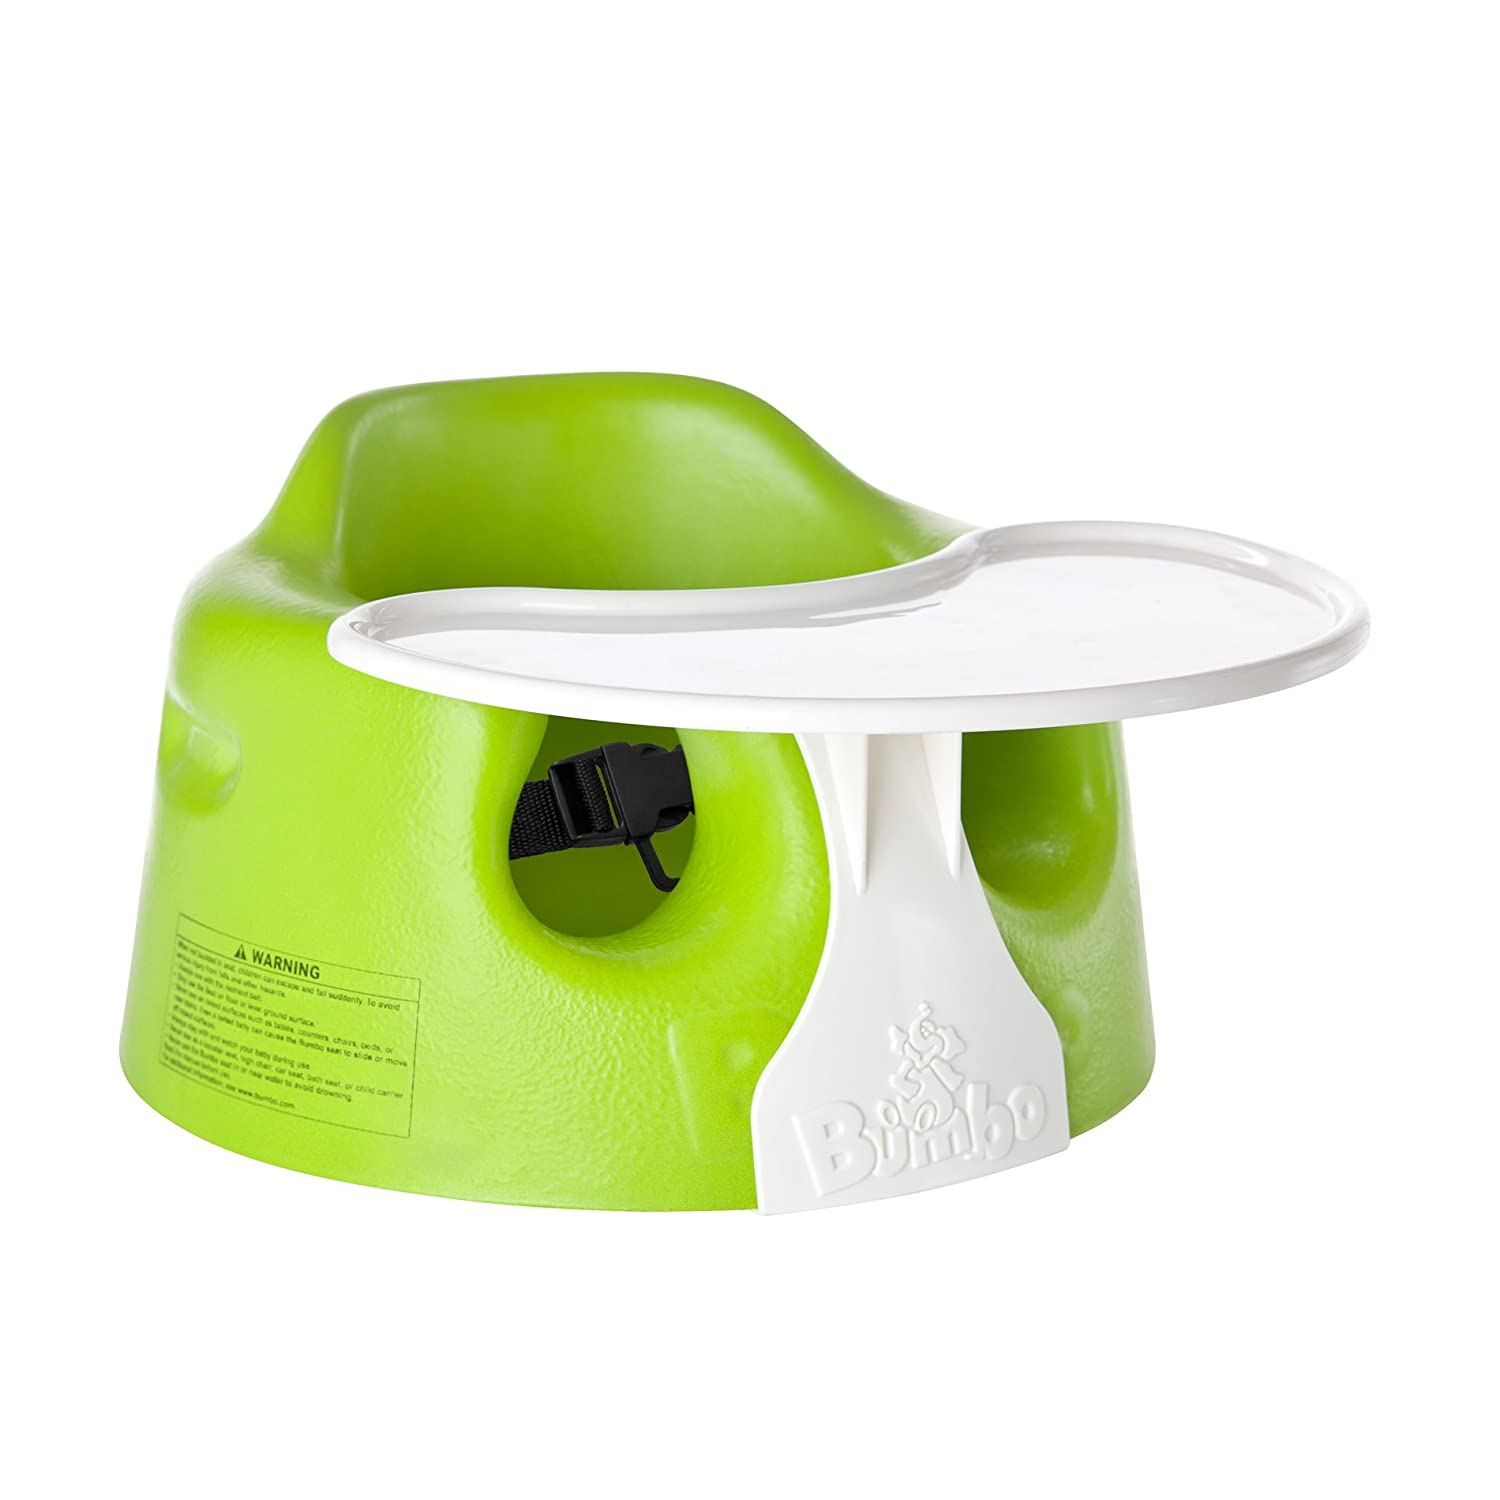 Bumbo Floor Seat and Play Tray bo Pack Lime Amazon Baby